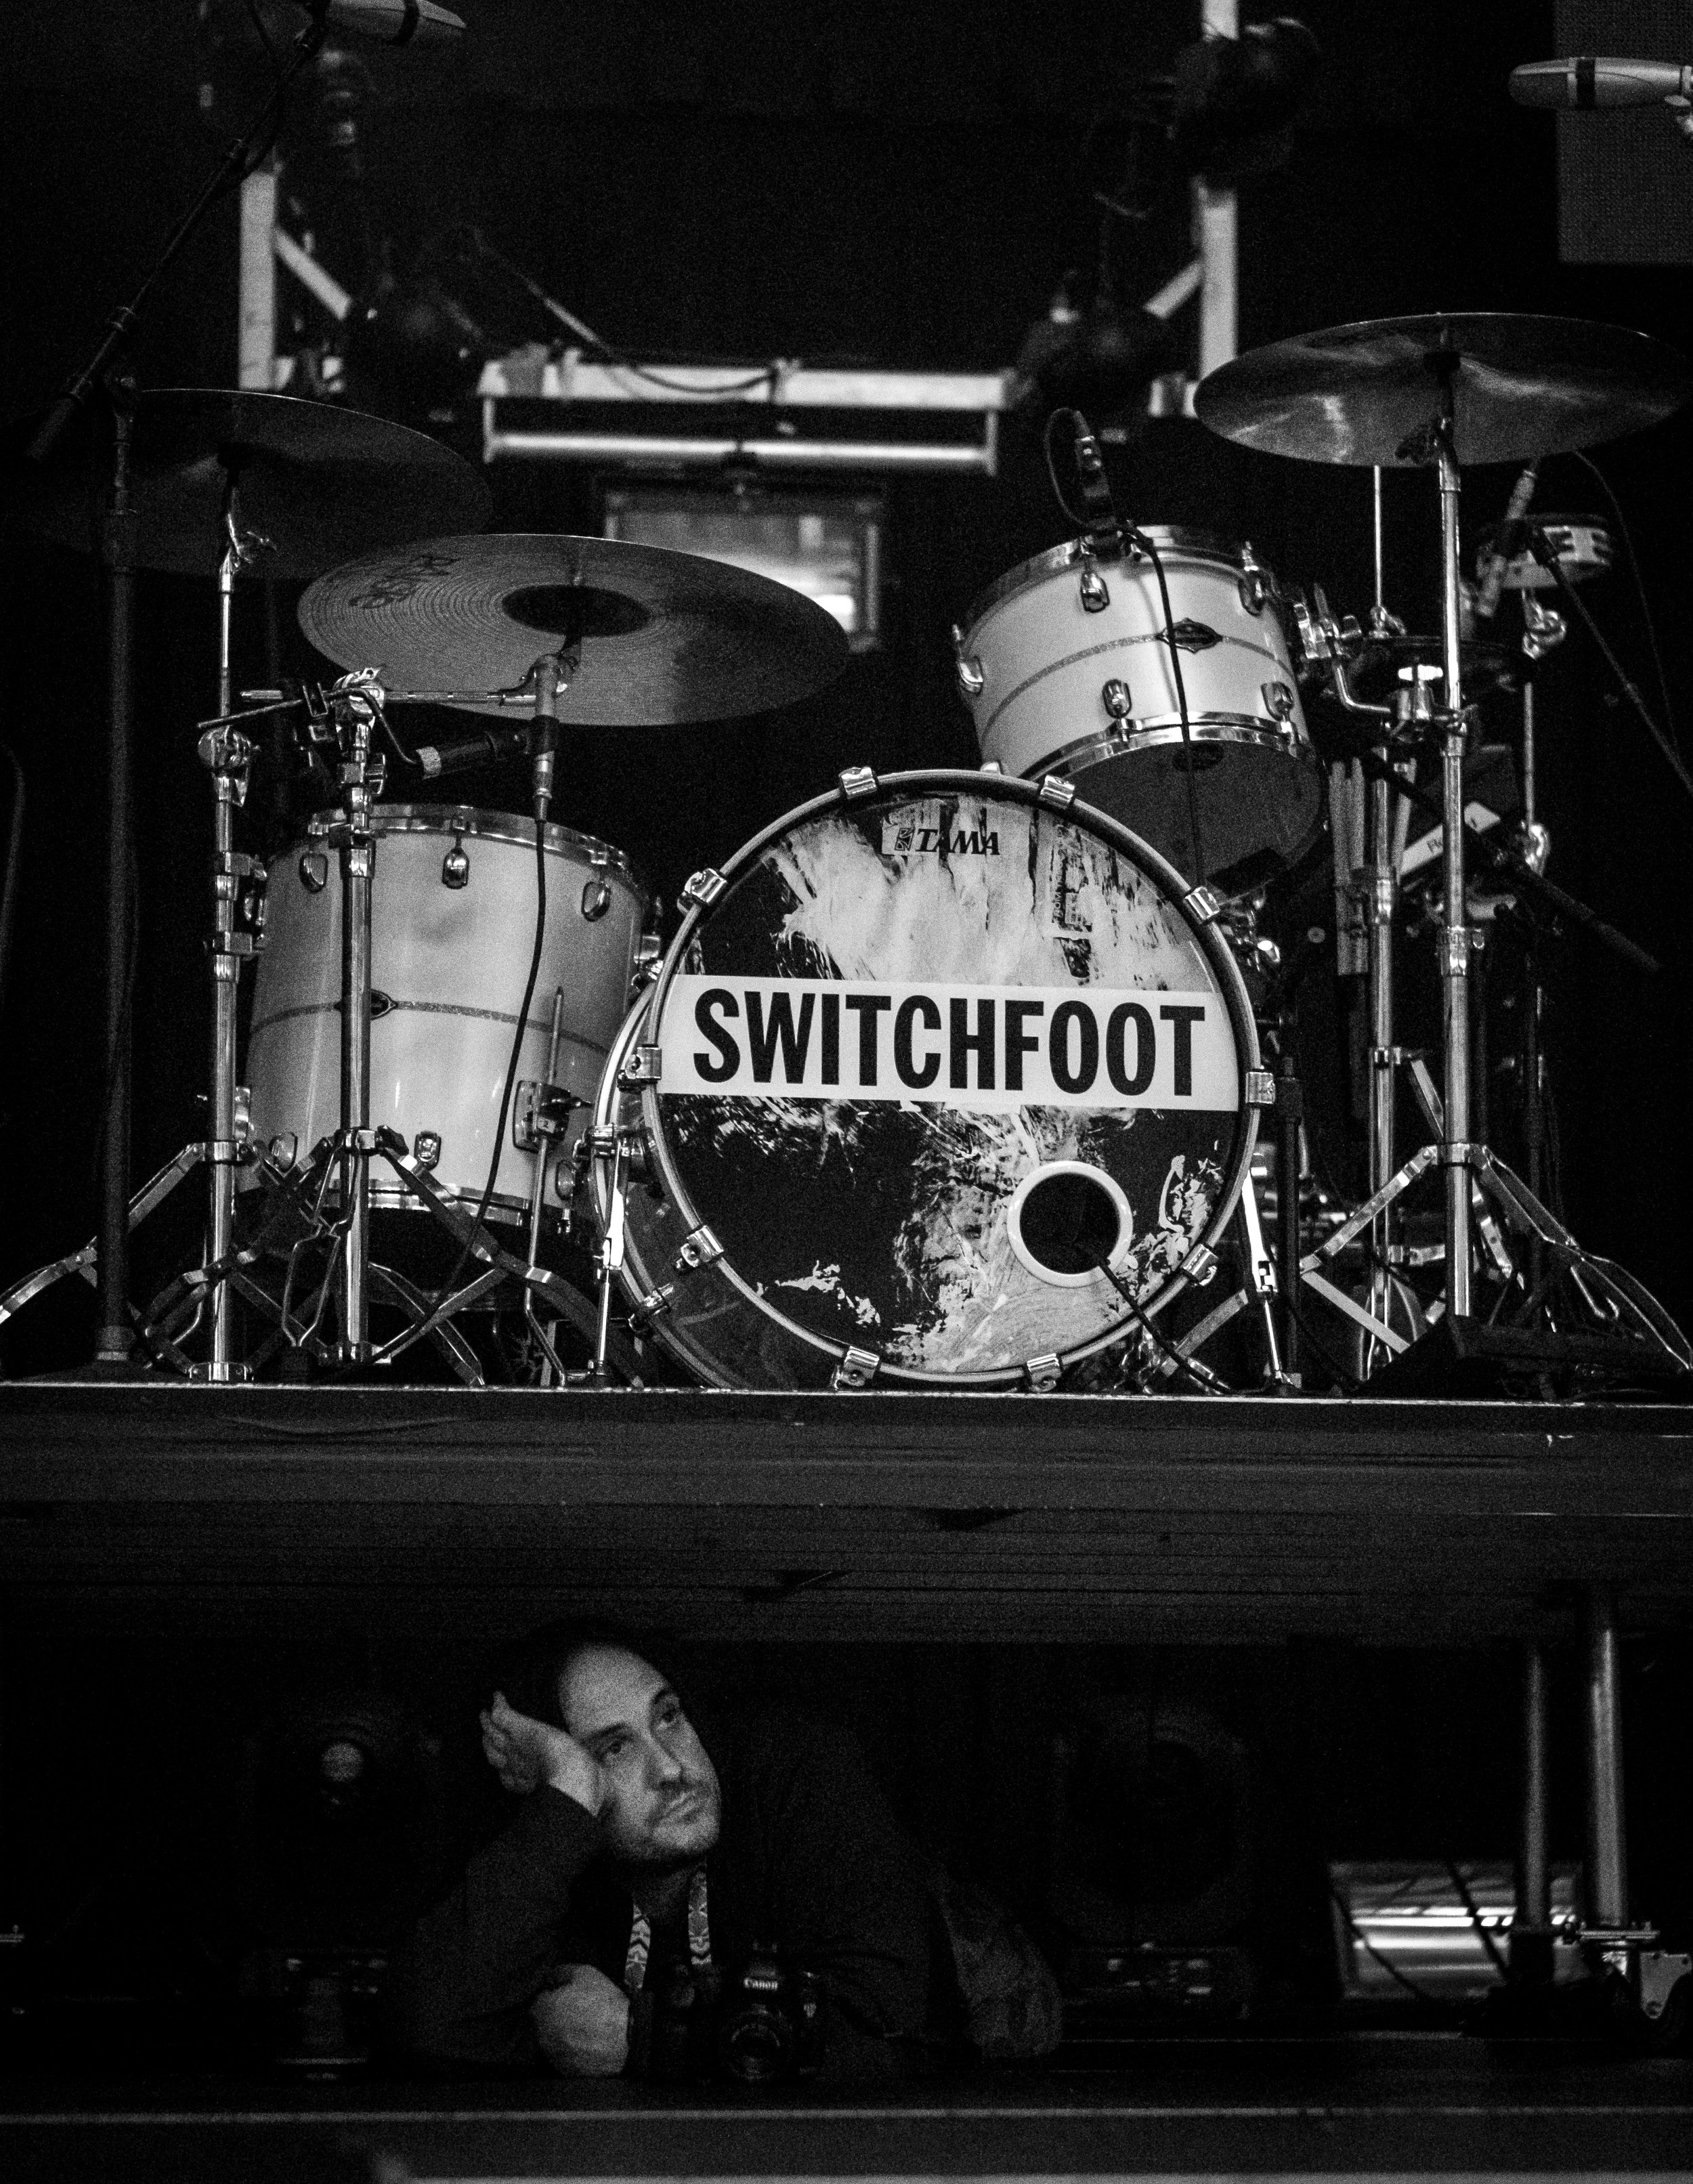 switchfoot-12.jpg